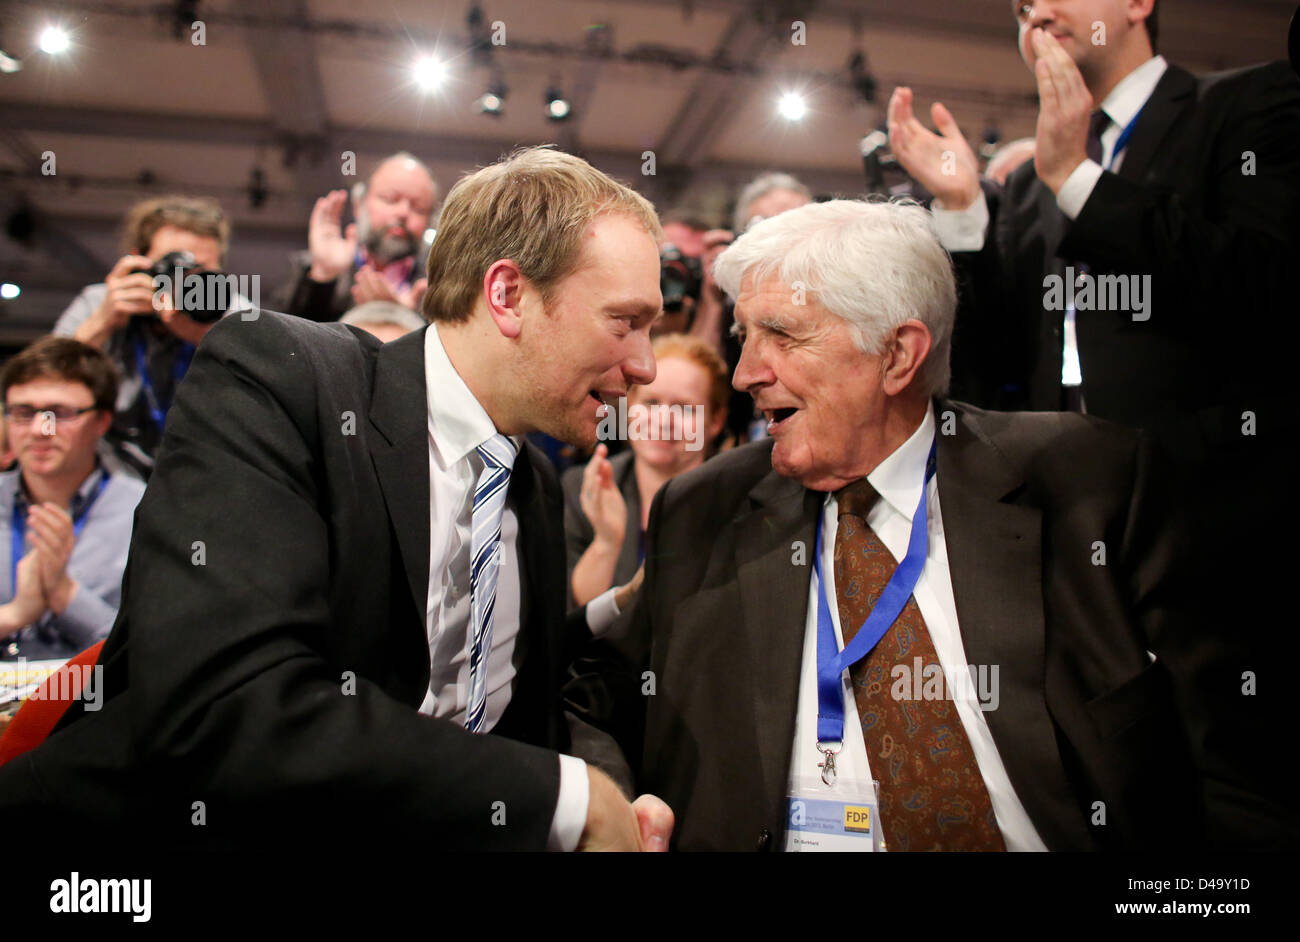 Party colleague Burkhard Hirsch congratulates the chairman of North Rhine-Westphalia's FDP and newly elected - Stock Image